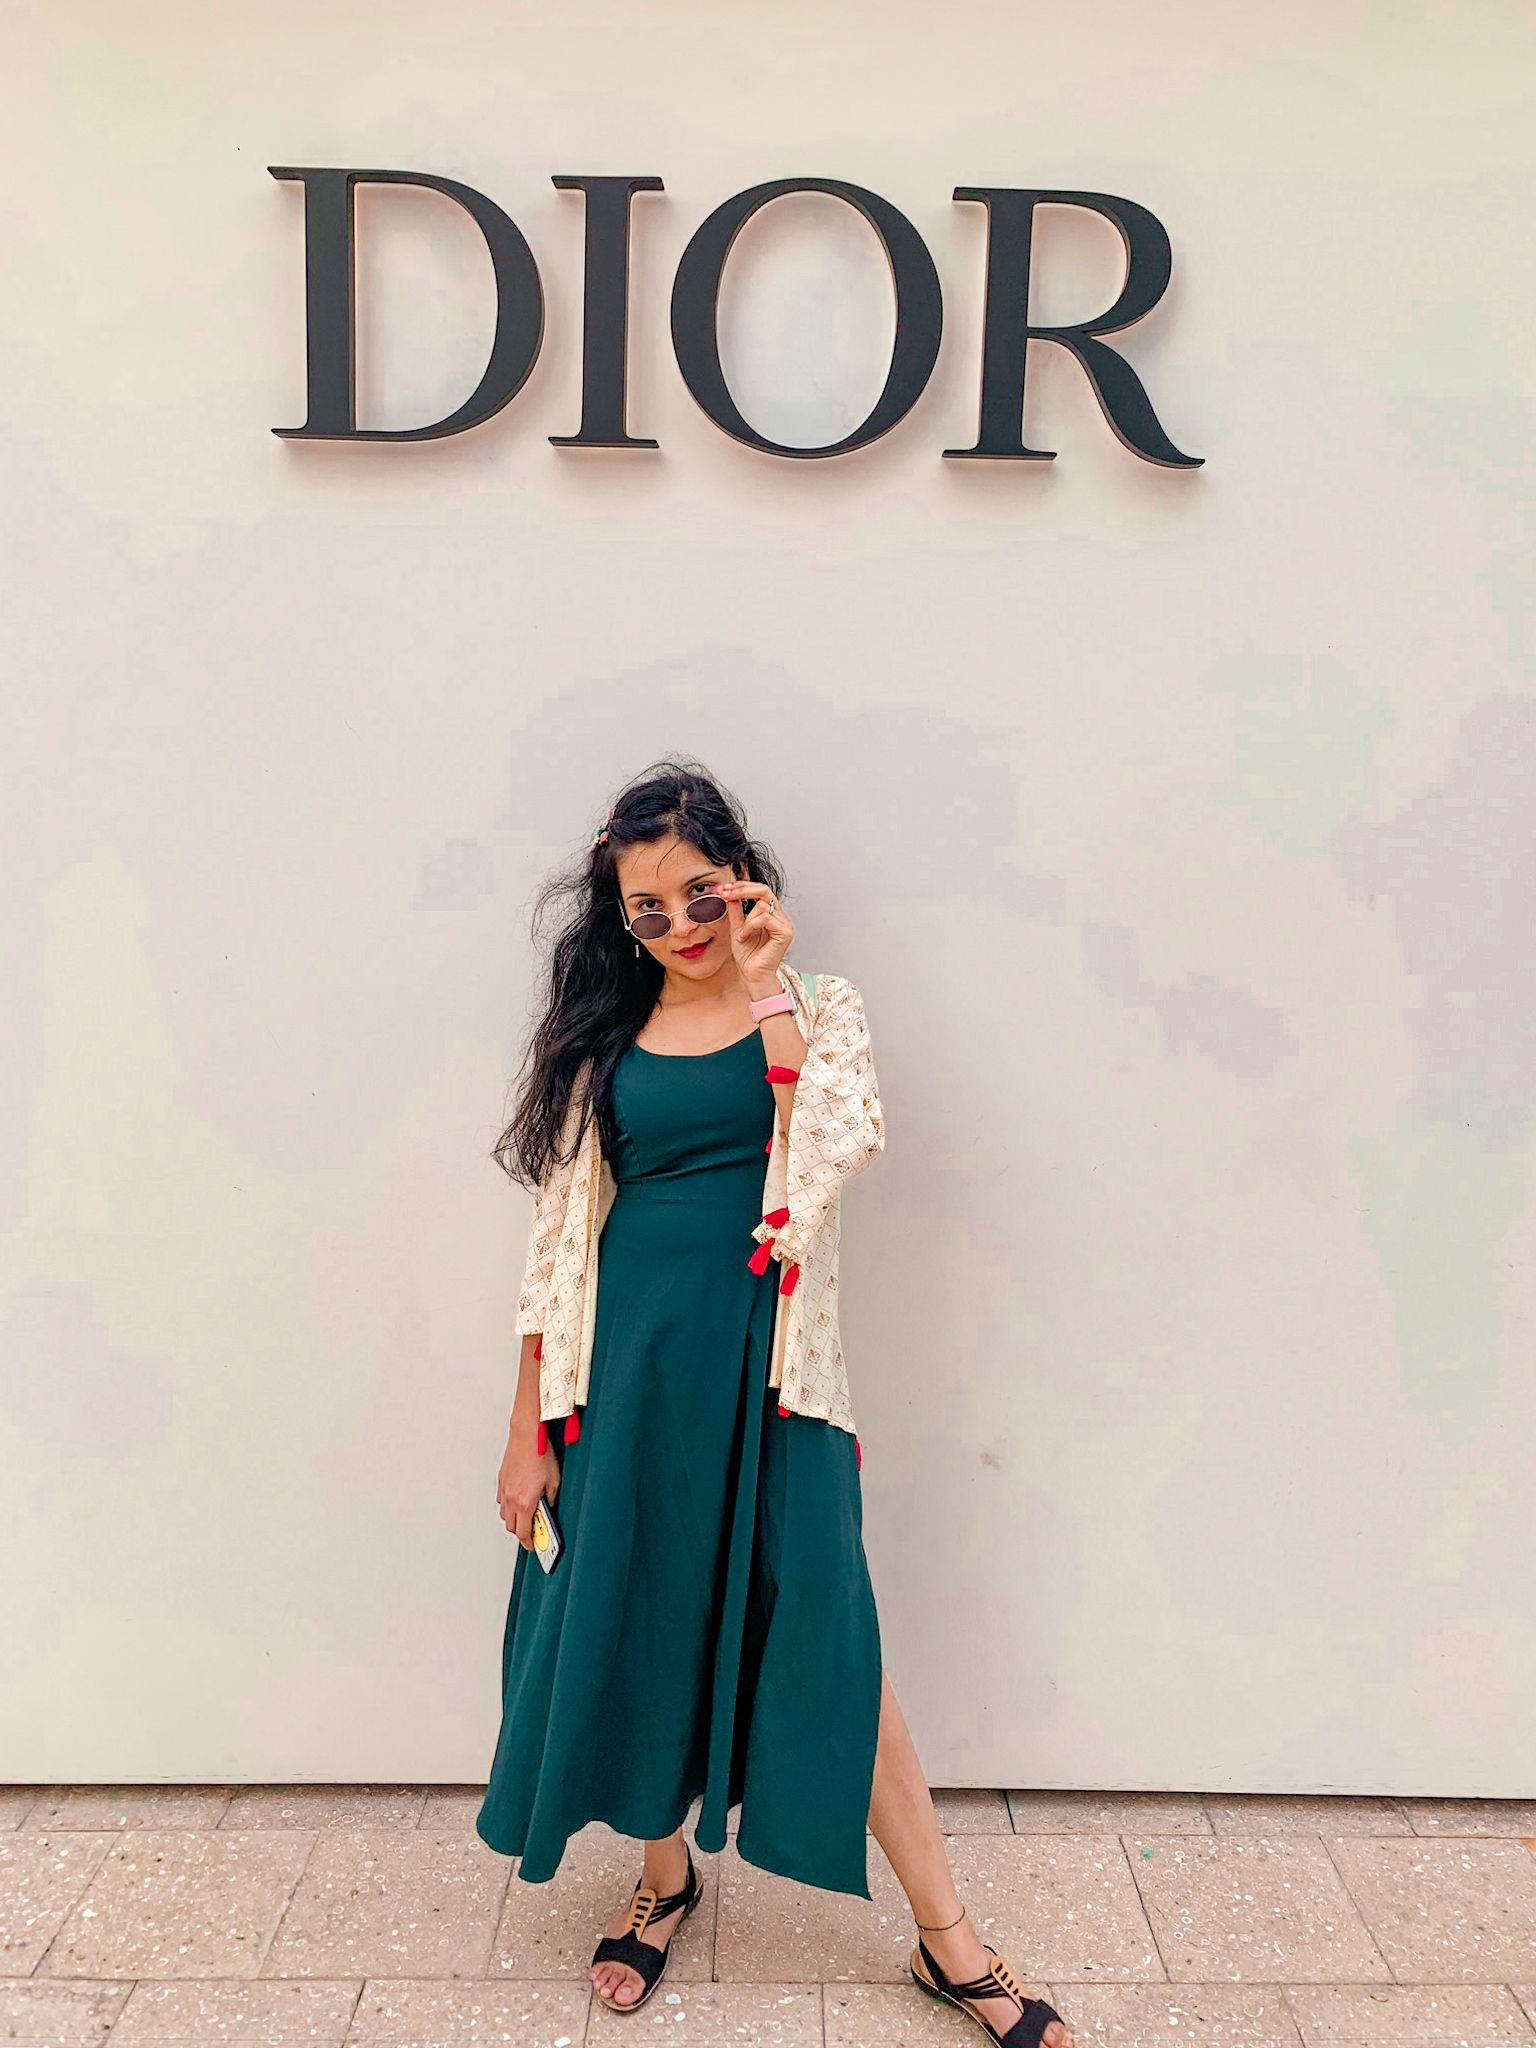 Loacated in the third floor of the Dior store ,this cafe is amazing.   #miamilifestyle #oceandrivemiami #miamivibes #lovemiami #southbeachmiami #visitmiami  #damestravel  #getlostnow #welivetotravel #aroundtheglobe #passportlife #shetravels #thenexttrip #thenexttripblog #undyinglovefortravel #explorerbabes #travelcommunity #dametravelers #travelpicsdaily #livetotravel #worldofwanderlust #thetraveltribe #travellingourplanet #ladiesgoneglobal #roamtheworld #travelhappy #travelinbetween